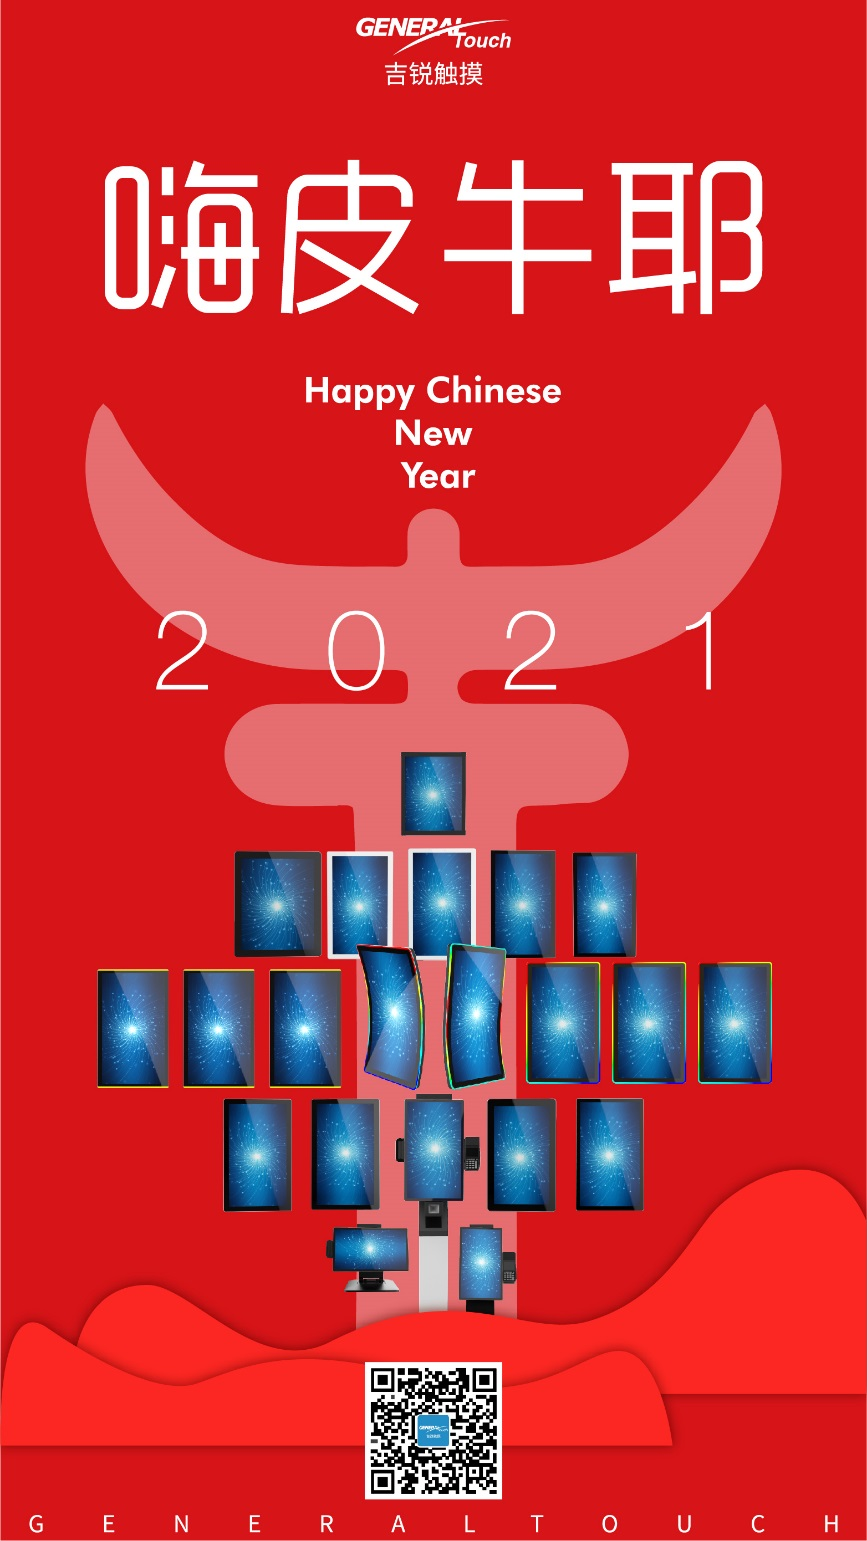 Happy Chinese New (Niu) Year for everyone!